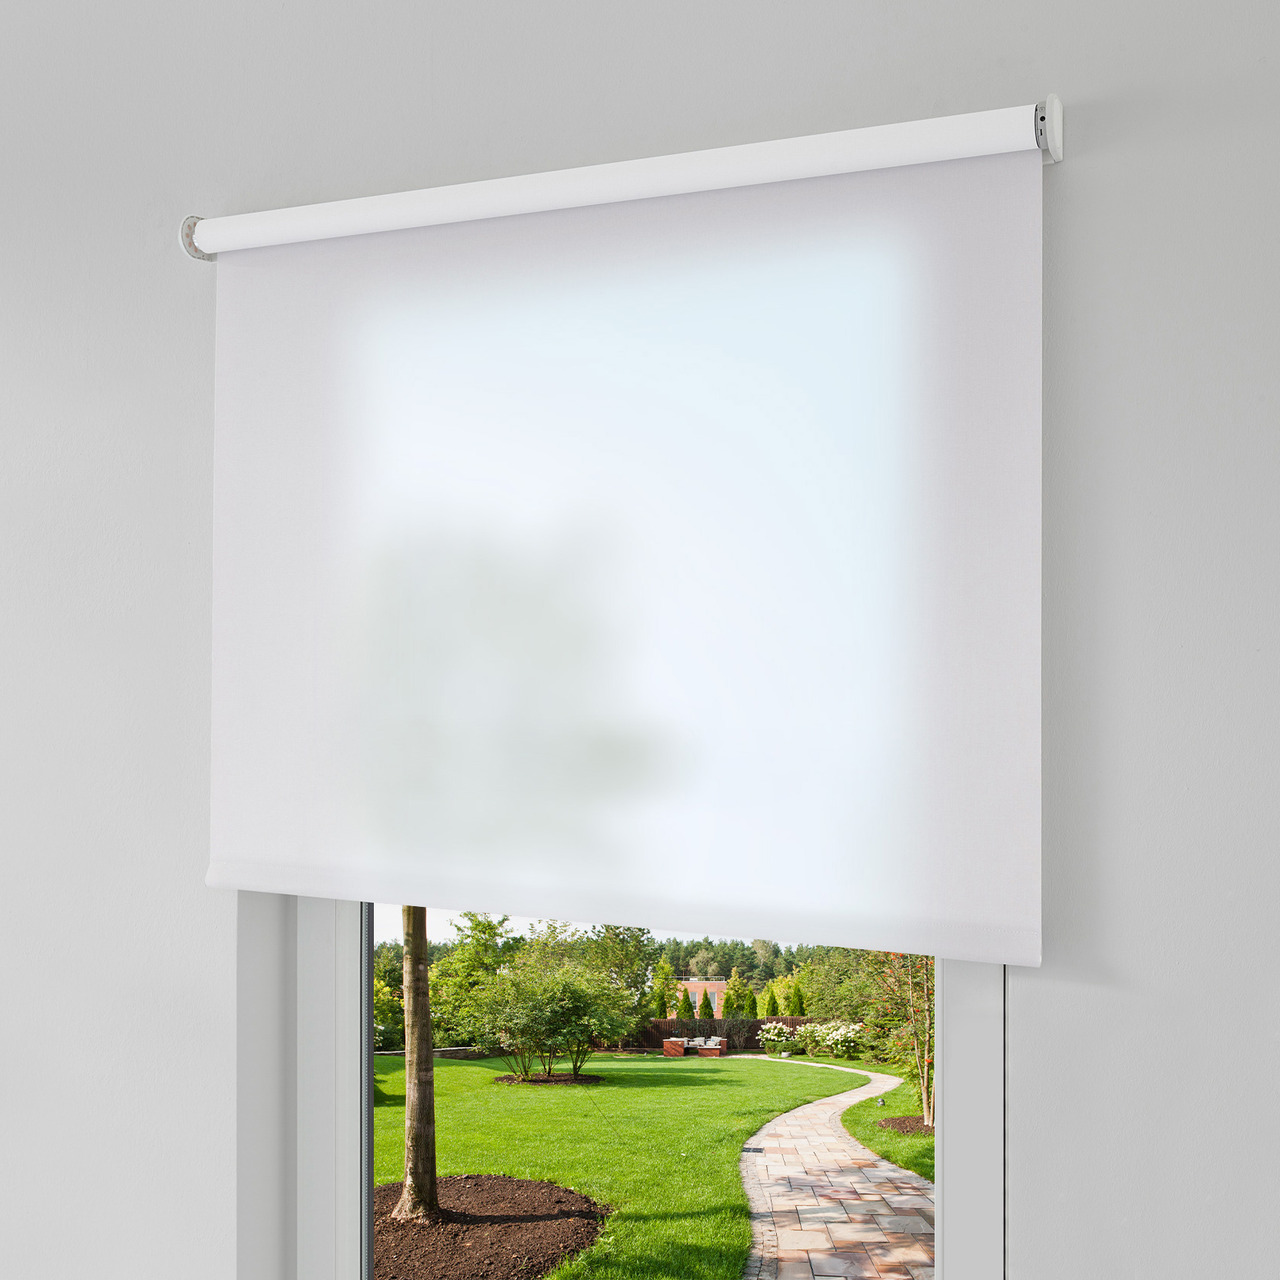 Erfal Smartcontrol Rollo by Homematic IP- 160 x 230 cm (B x H)- halbtransparent tageslicht weiss